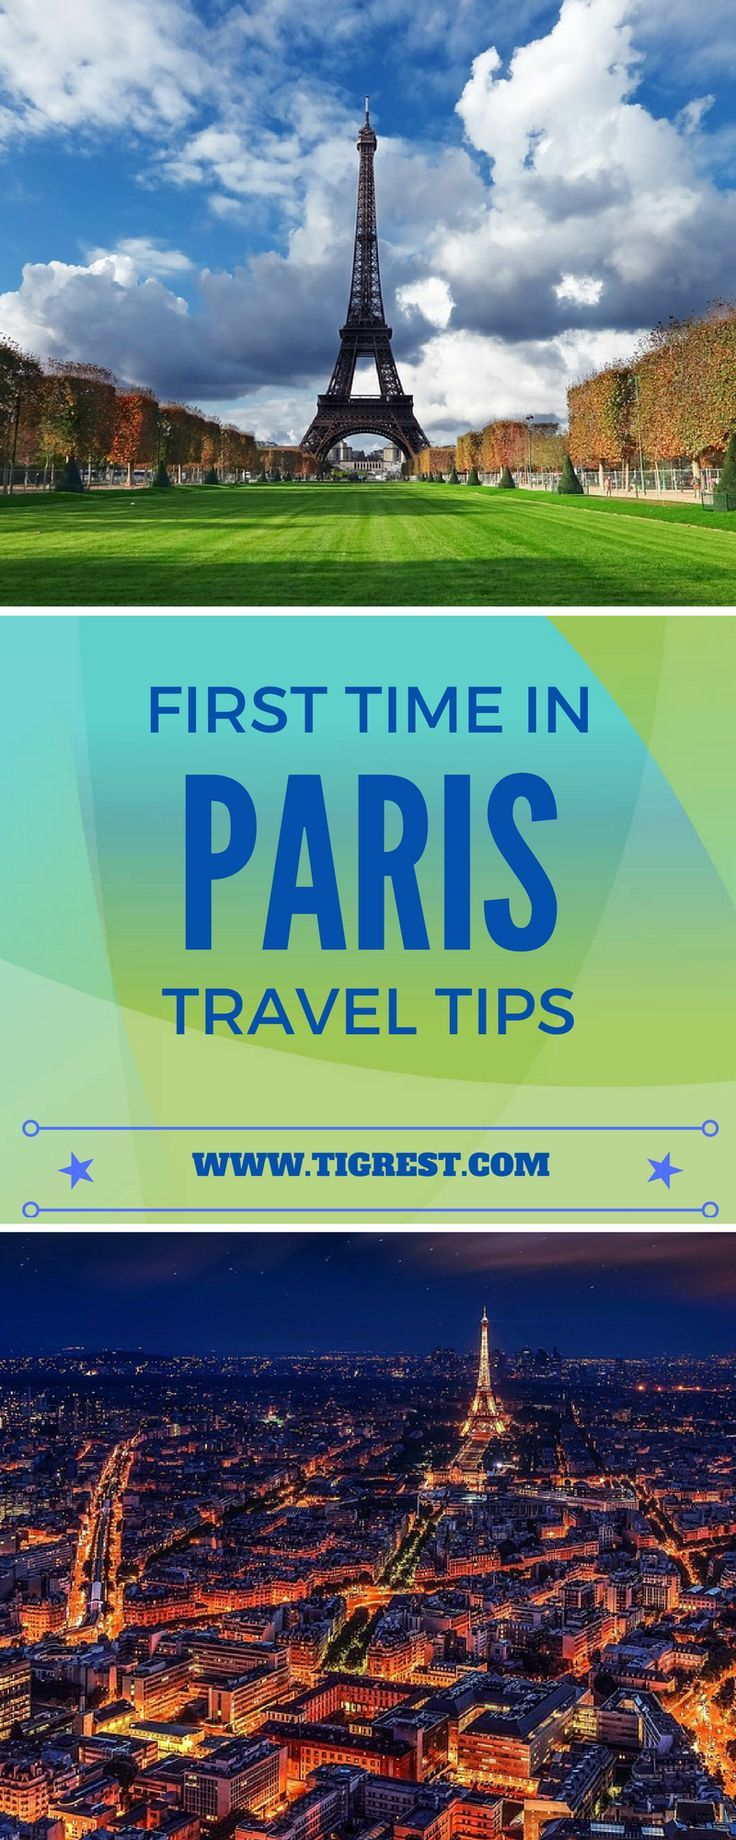 First time in Paris? Visiting this amazing city is both exciting and unforgettable. So how to spend your first few days? Read more to find out